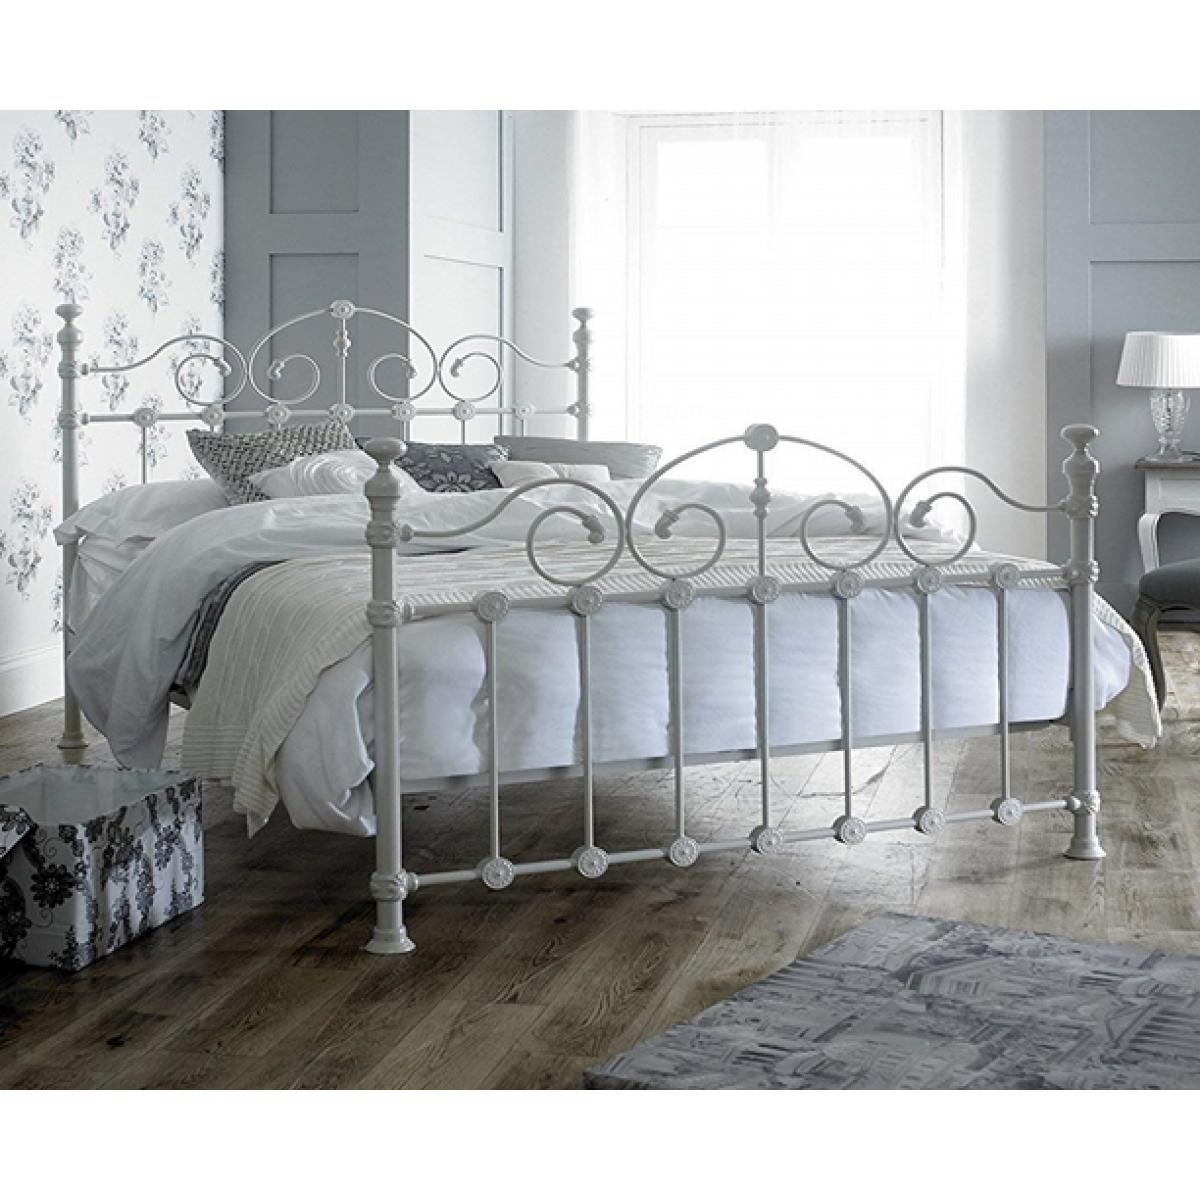 Picture of: Louisiana White Ornate Metal Bed Frame